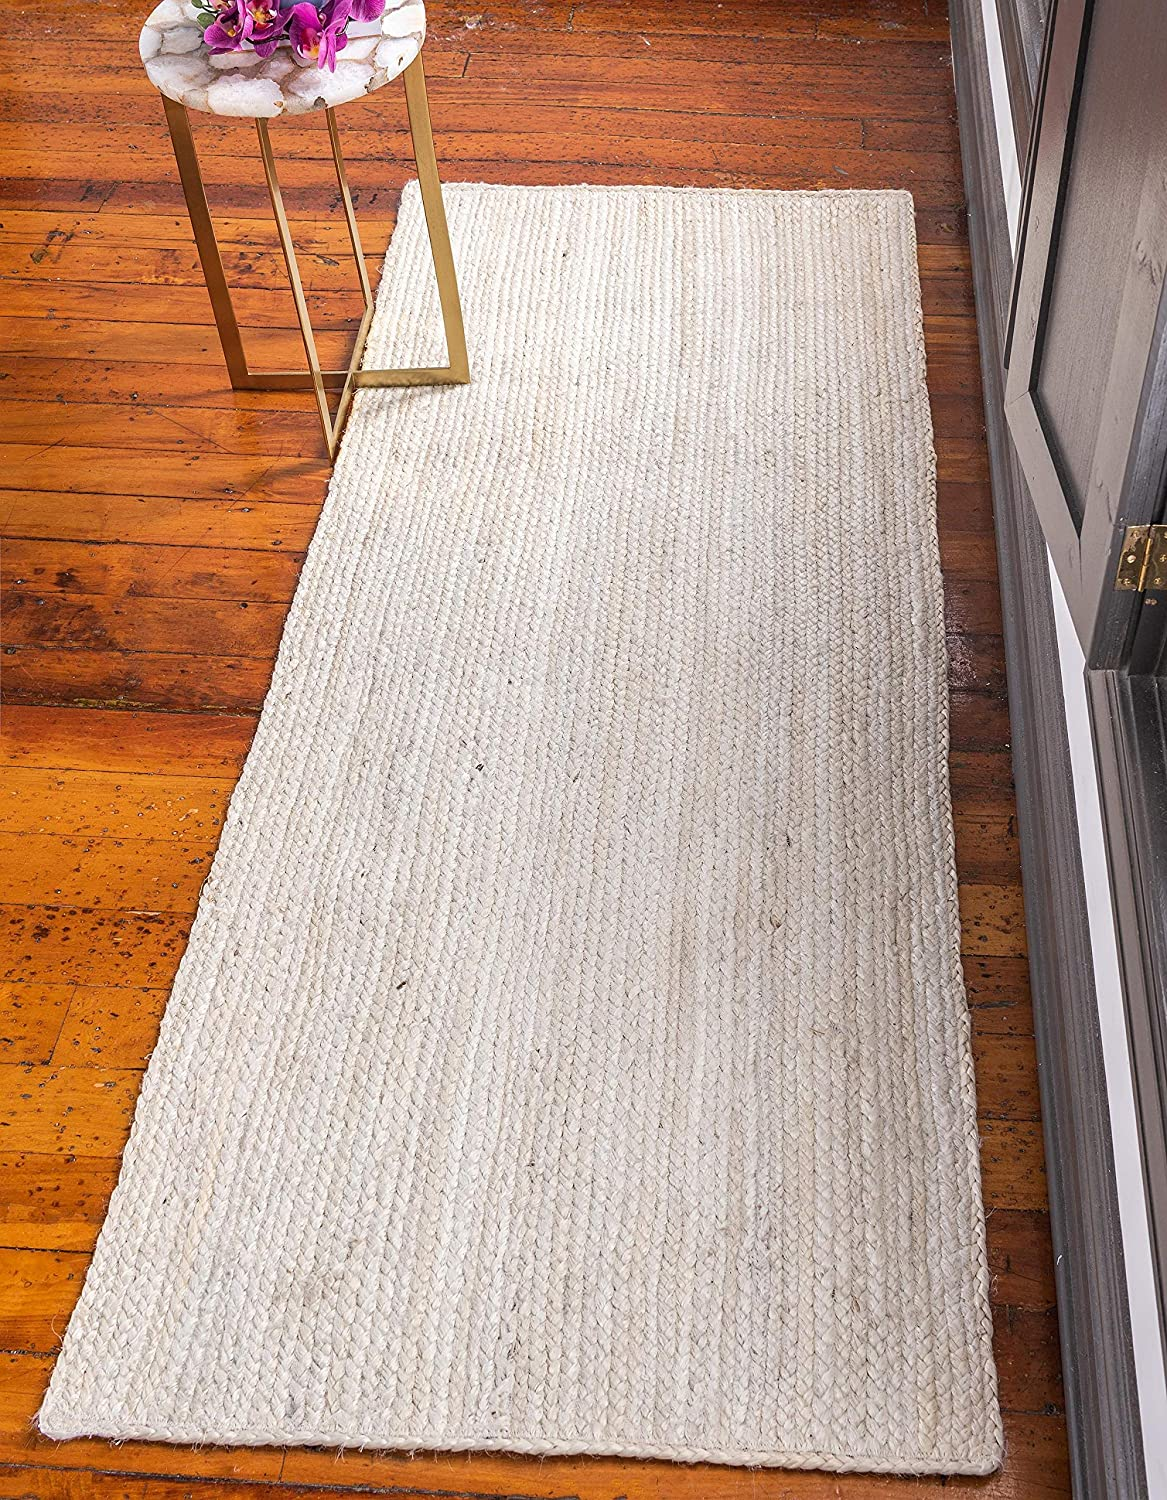 White 3' x 6' Runner Unique Loom Braided Jute Collection Hand Woven Natural Fibers Navy bluee Runner Rug (3' x 6')